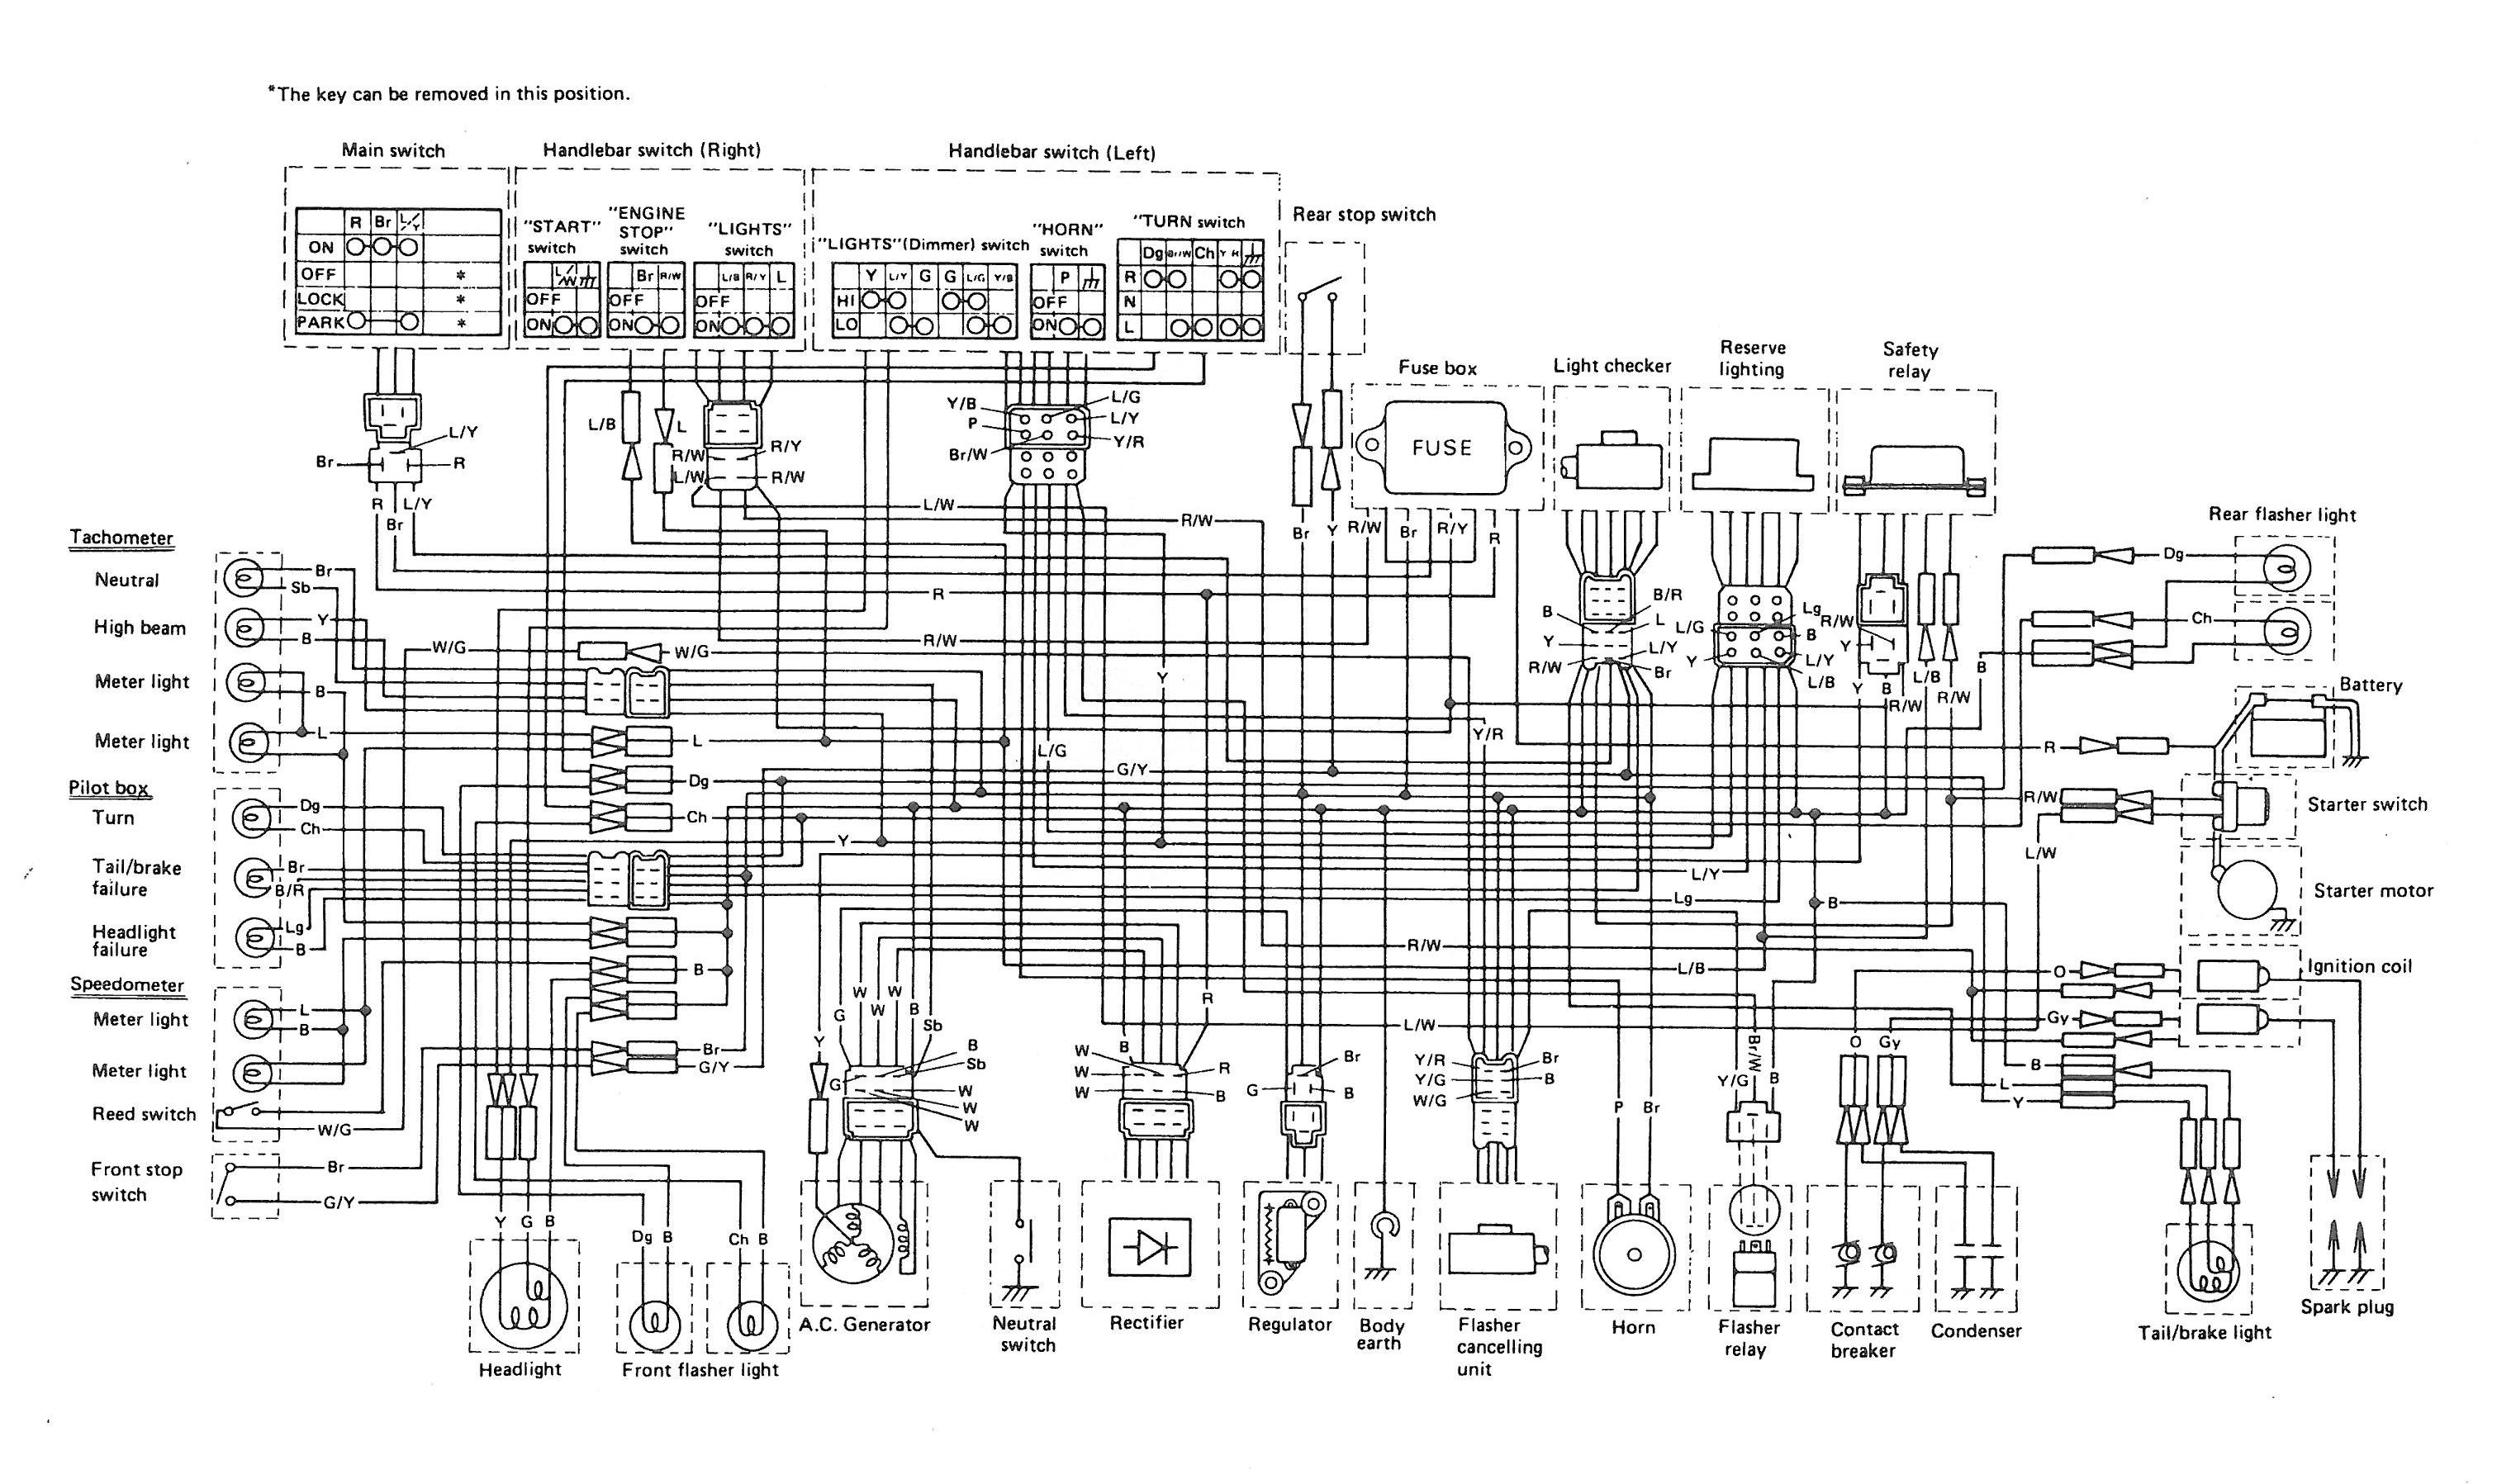 Yamaha Xs750 Wiring Diagram - Wiring Diagram Models advice-applied -  advice-applied.zeevaproduction.it | 1980 Yamaha Xs850 Wiring Diagram |  | advice-applied.zeevaproduction.it